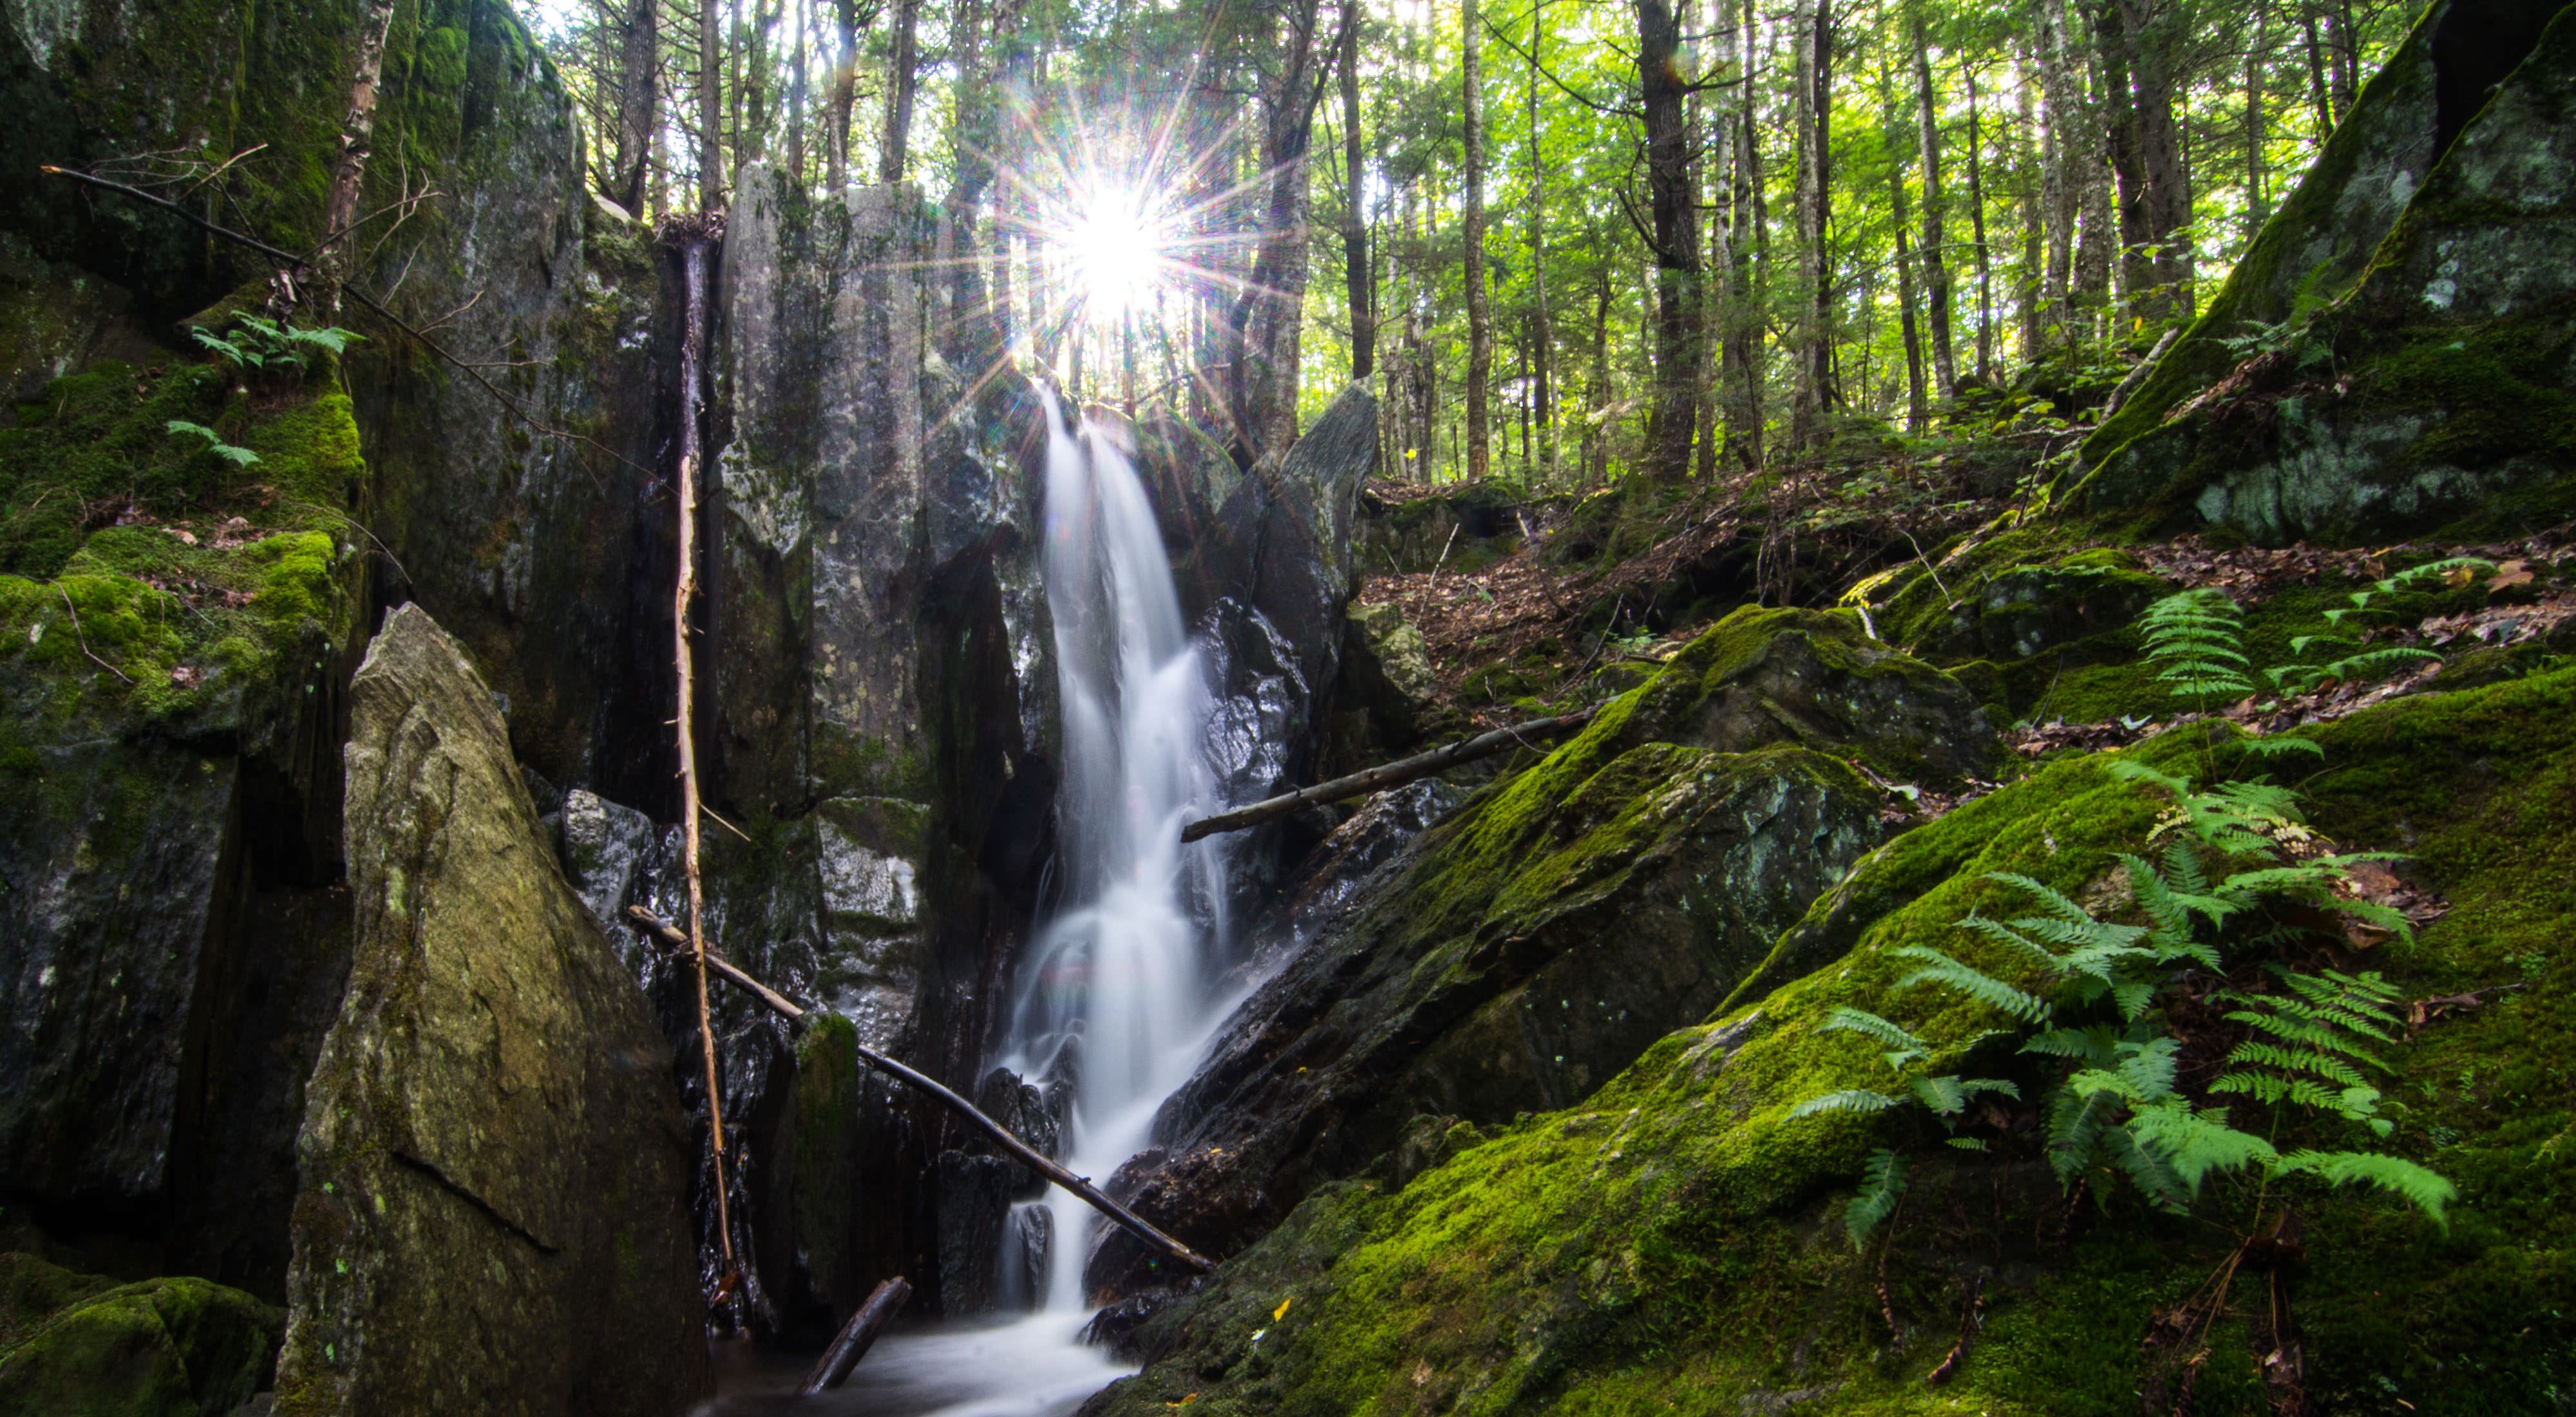 A waterfall flows along Sculptured Rocks Road in Groton, New Hampshire near Kimball Hill Forest